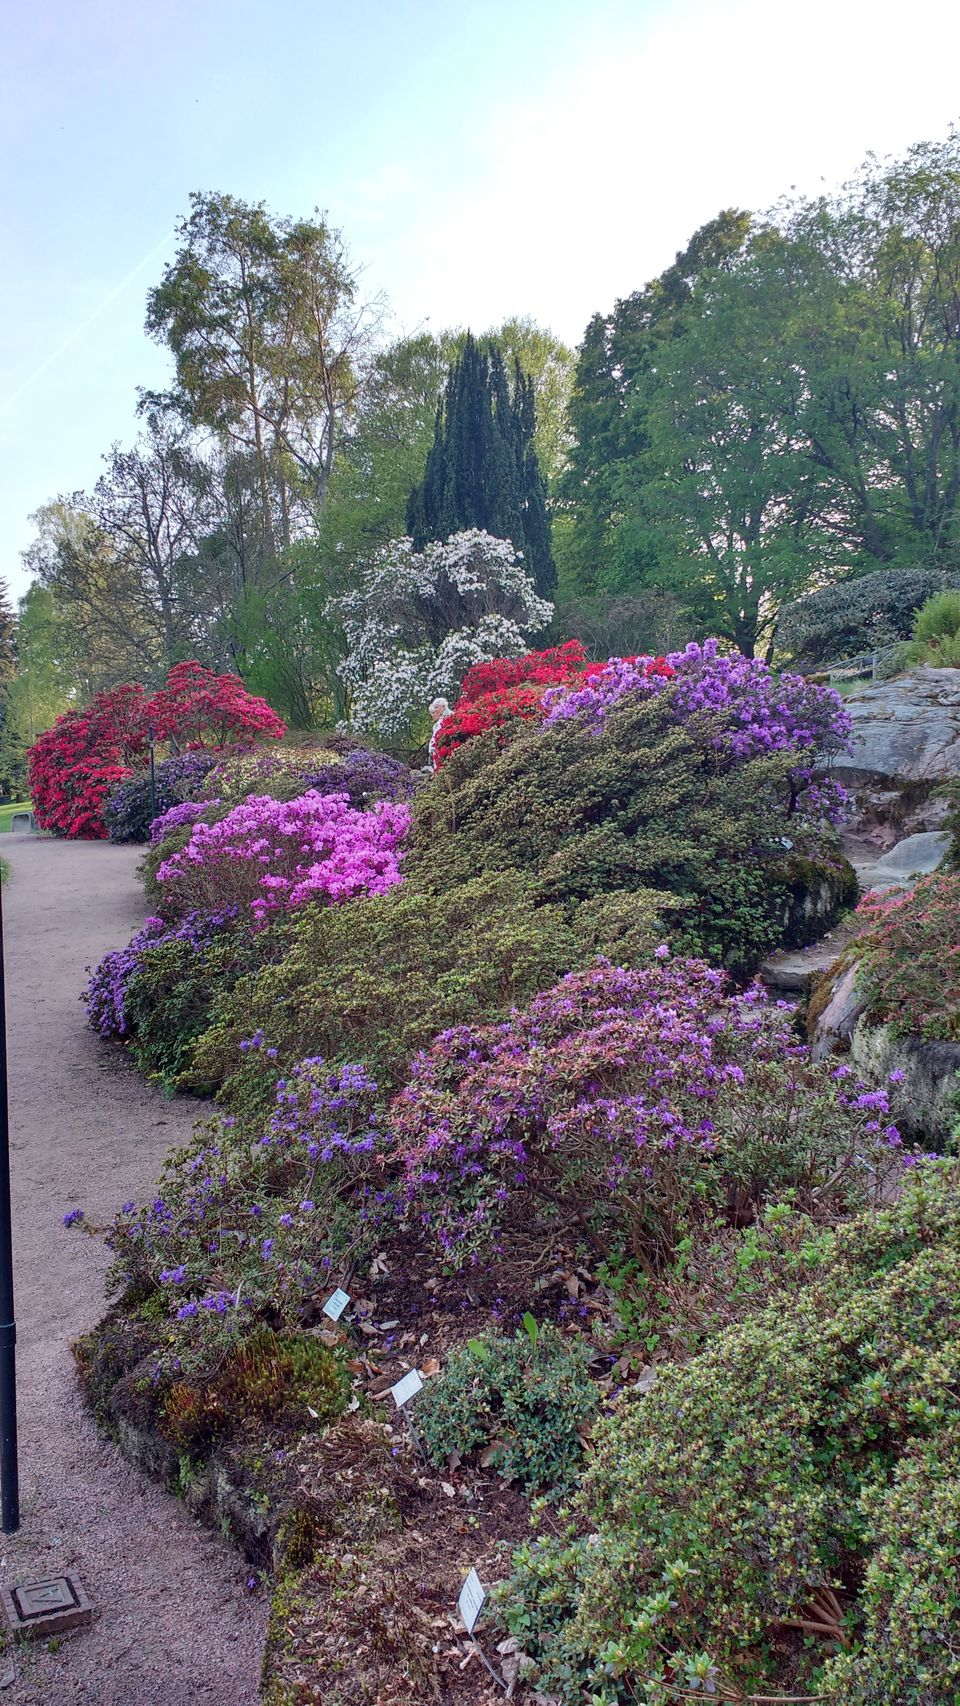 Photo of Göteborg Botaniska Trädgården, Gothenburg, Sweden by theuncanny_traveller